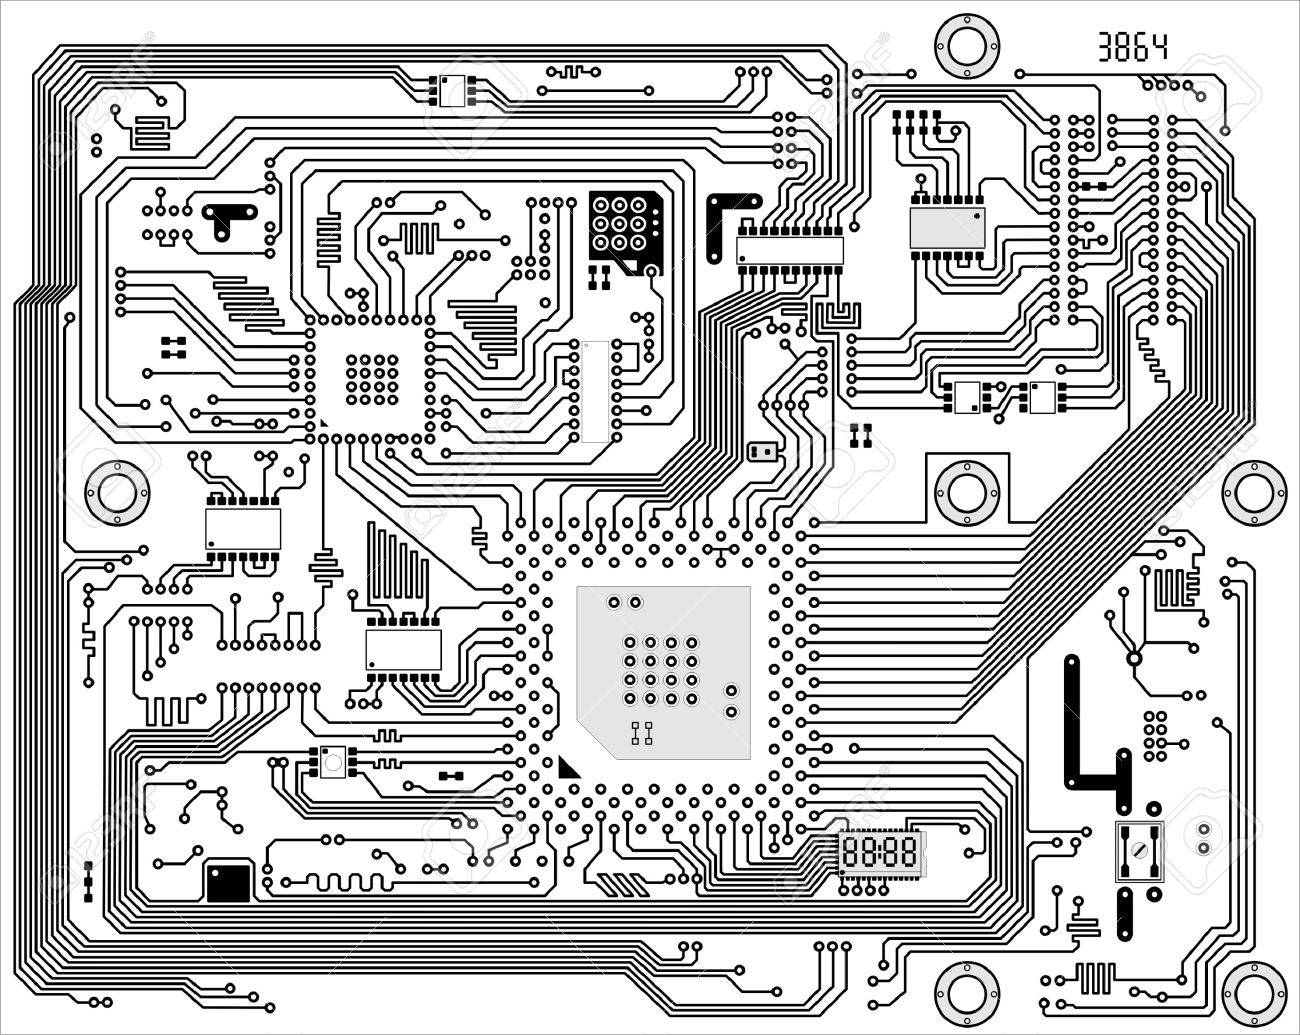 Hi-tech black and white industrial electronic vector background - 4948725